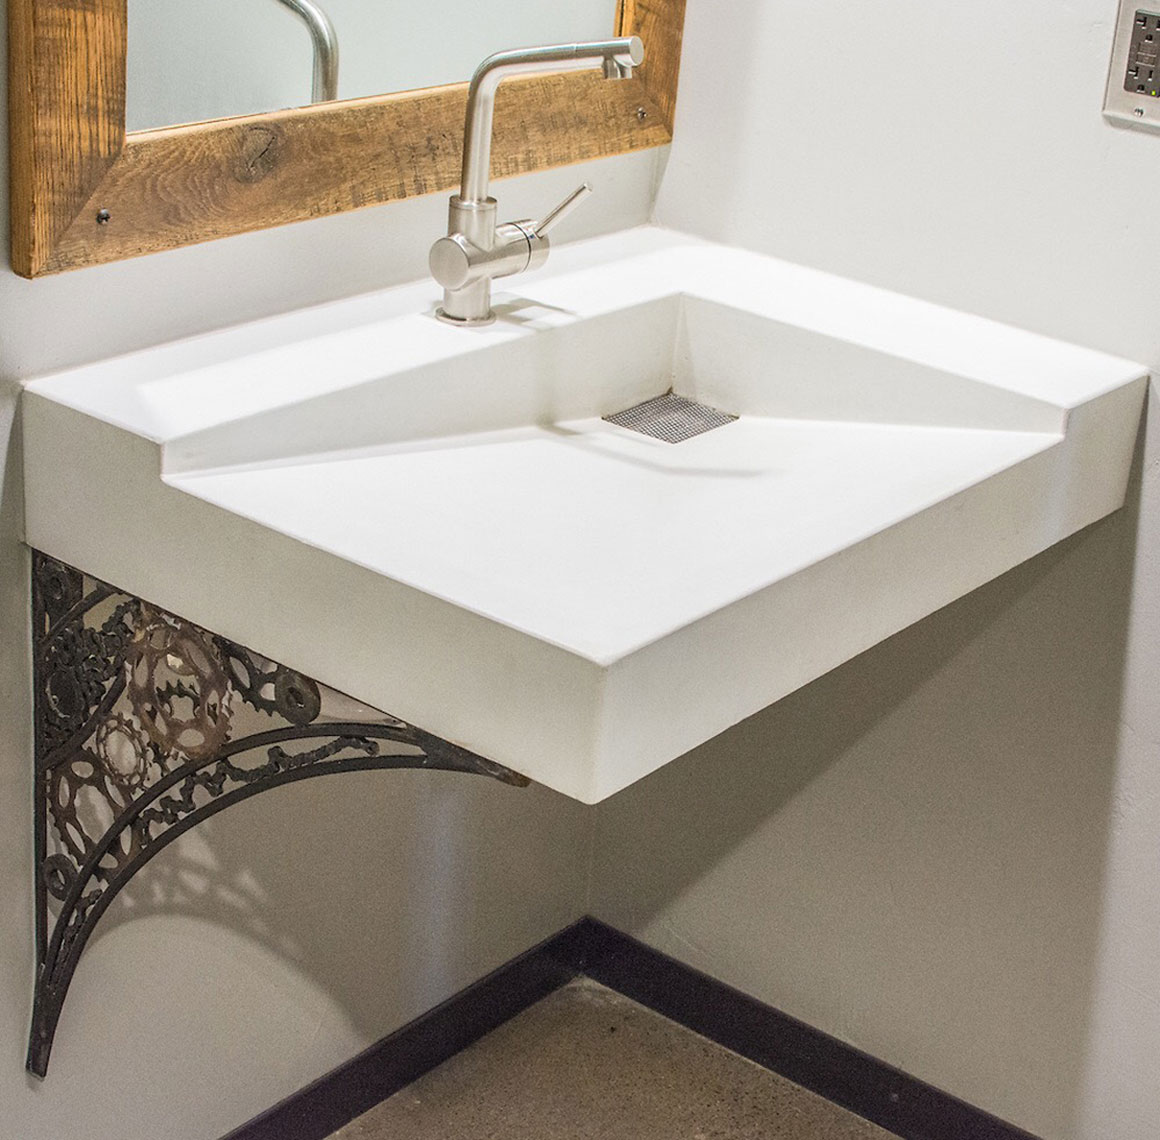 White-Concrete-Sink.jpg